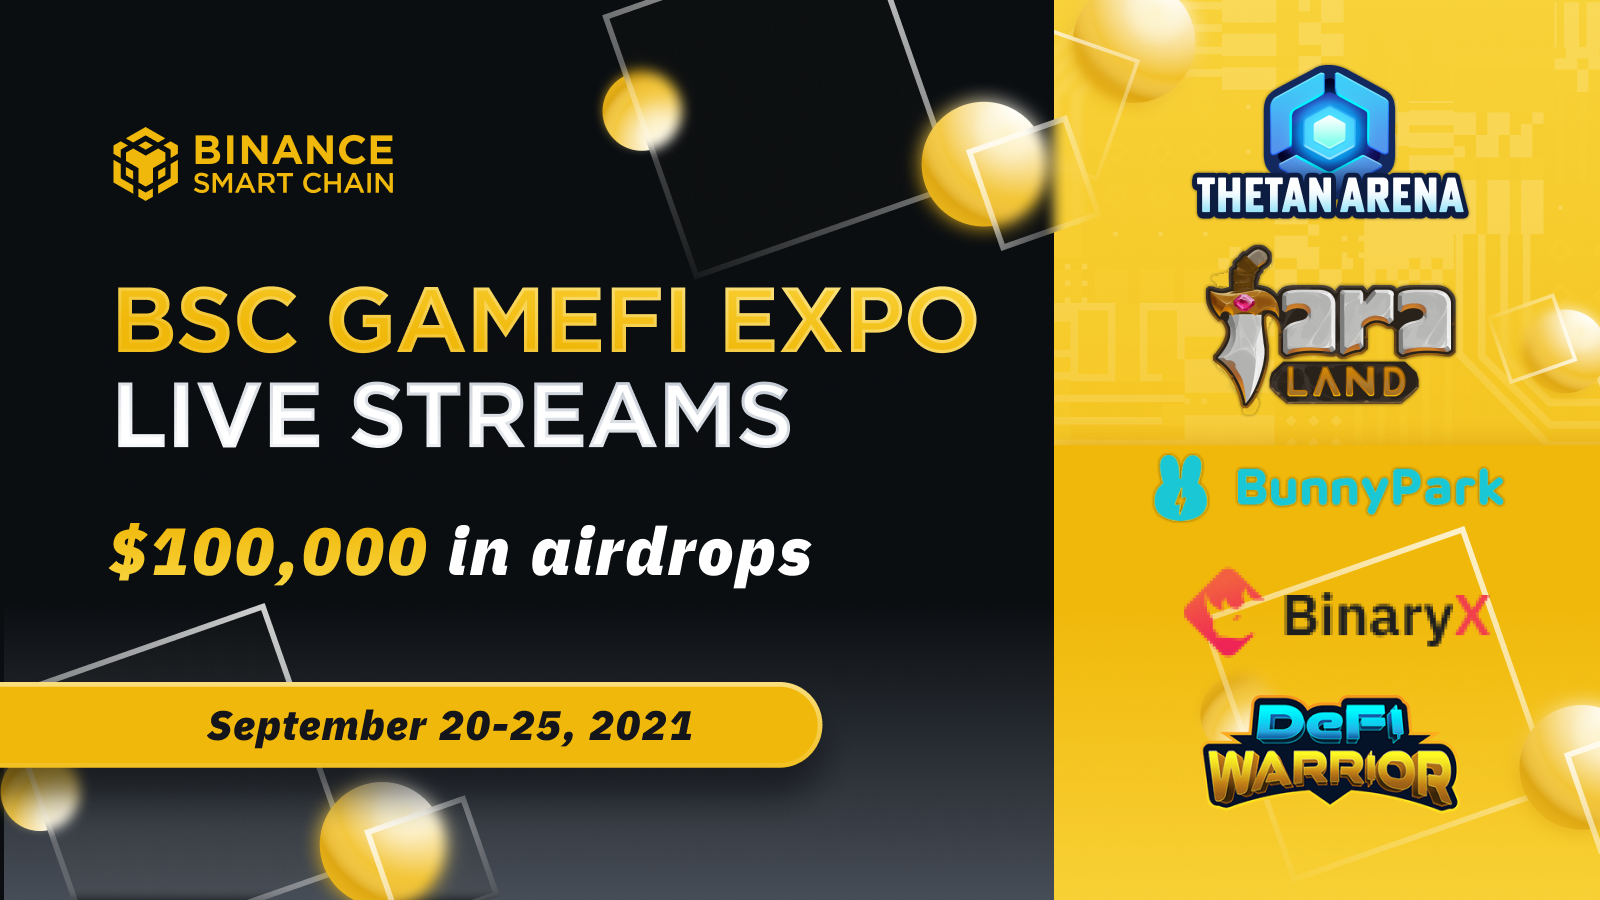 Join us for the BSC GameFi Expo! Airdrops, live streams, and top GameFi projects